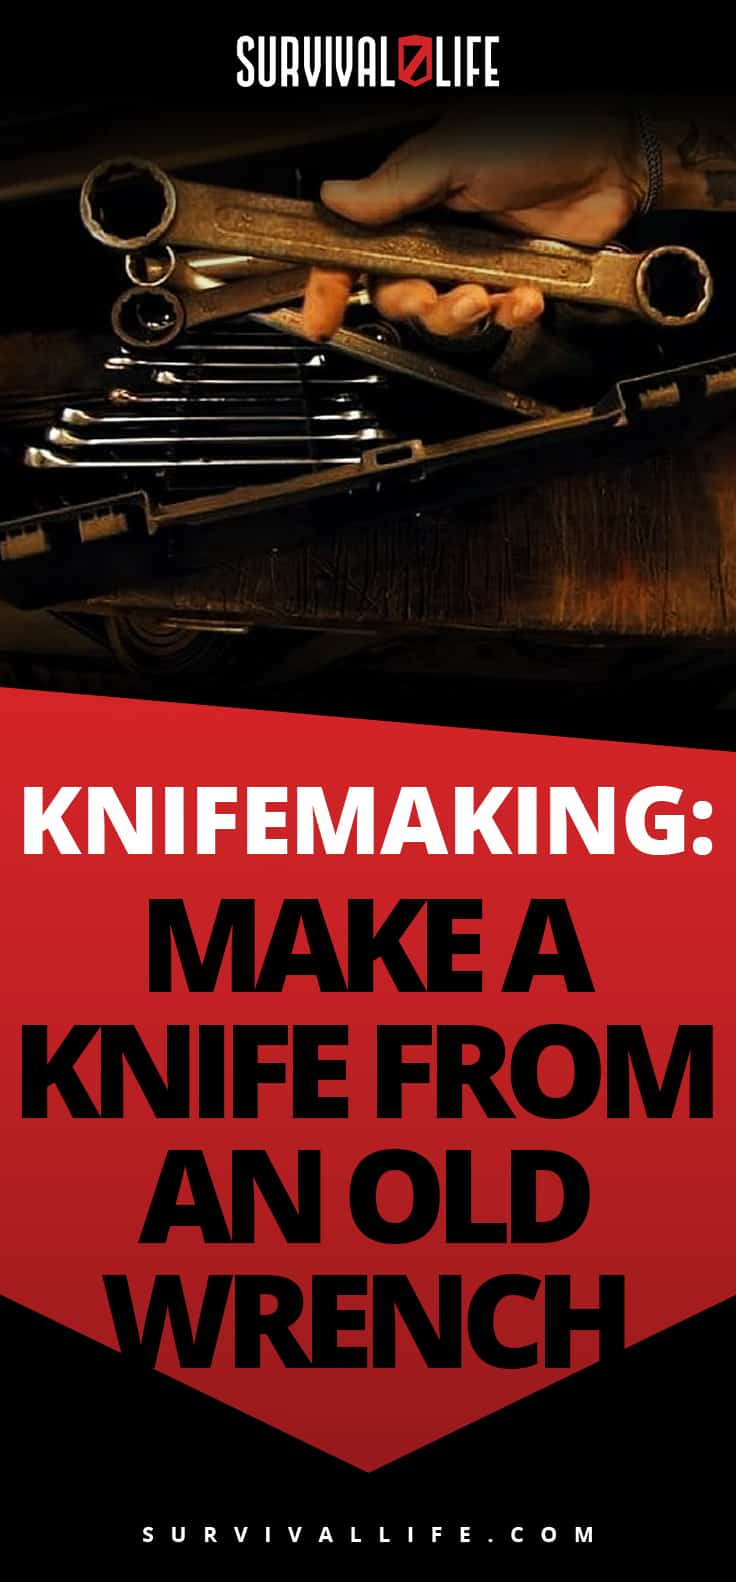 Placard | Old Wrench Knife | Knifemaking: Make A Knife From An Old Wrench